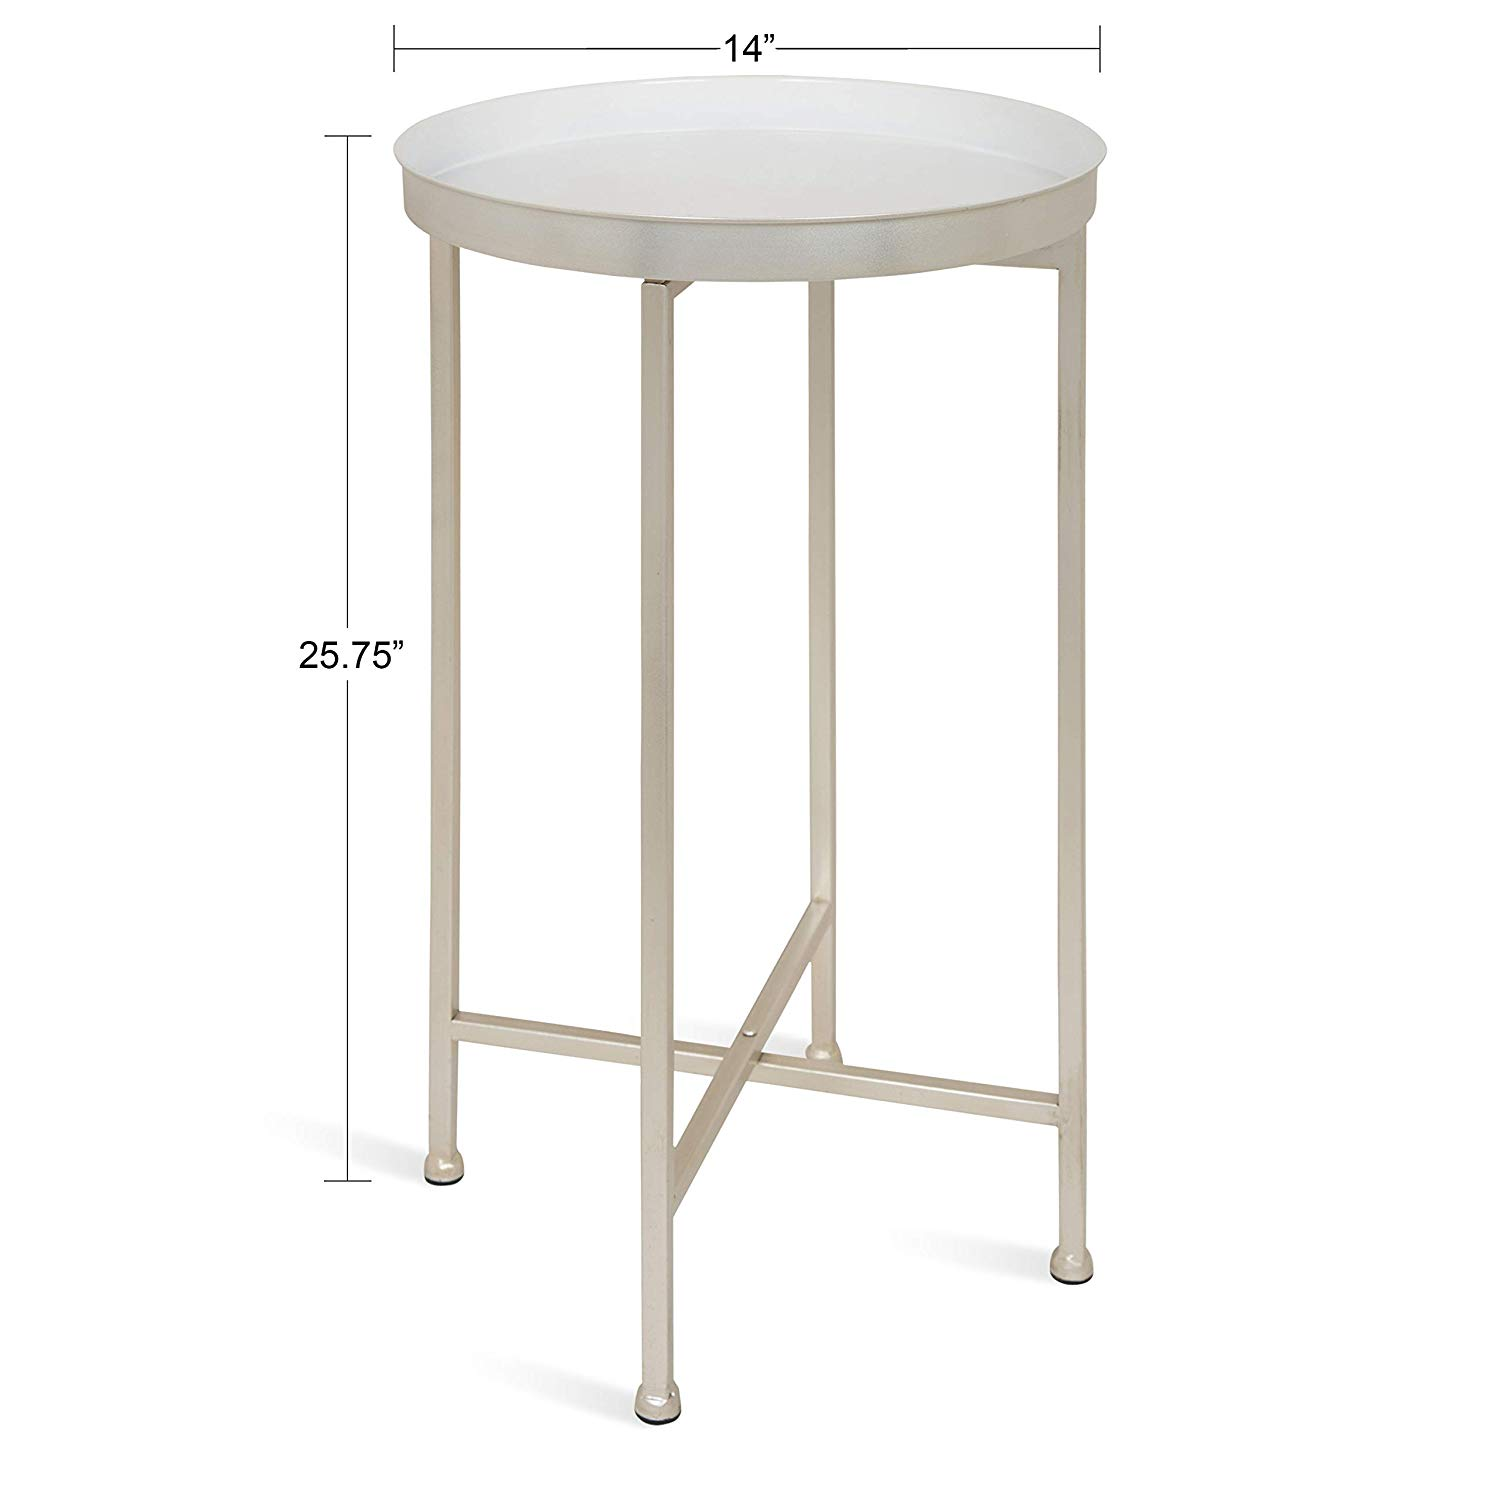 kate and laurel celia round metal foldable tray accent table with white silver base kitchen dining victorian style coffee side basket drawers rustic end tables diy retro bedroom